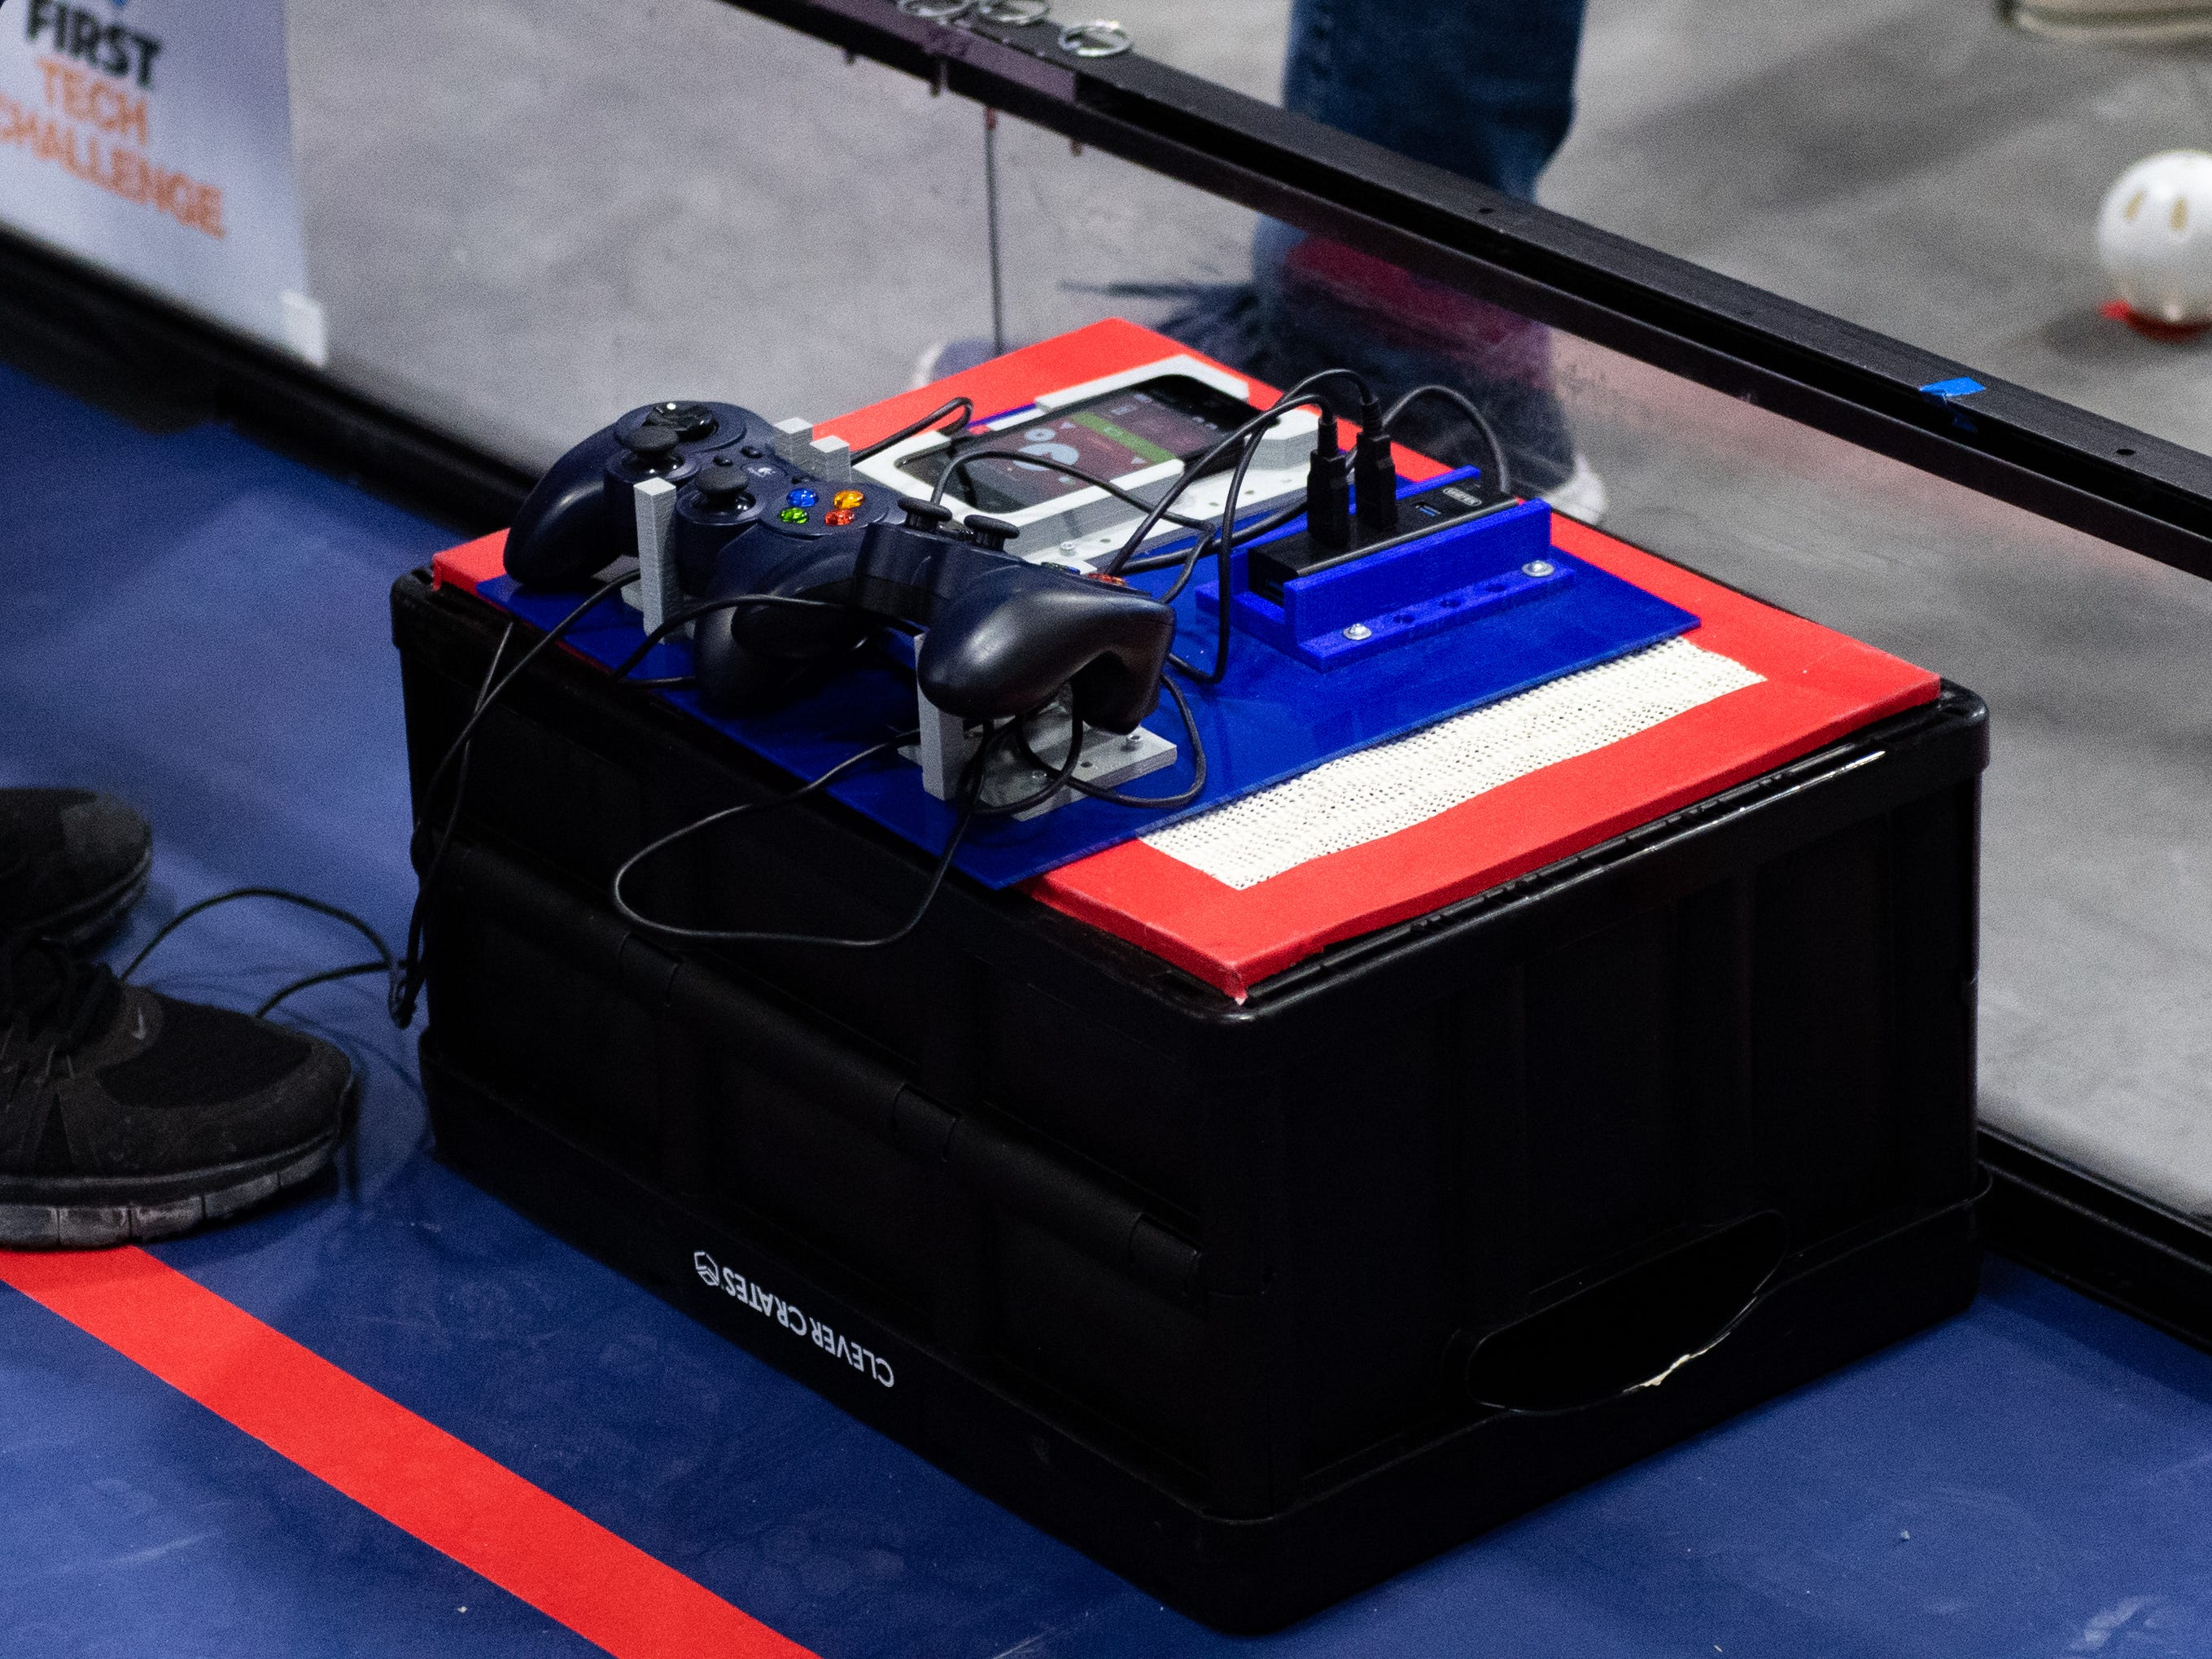 Initially the robots run autonomously, but then students take control of them  after a few seconds during the First Tech Challenge robotics competition at Penn State York, February 2, 2019.